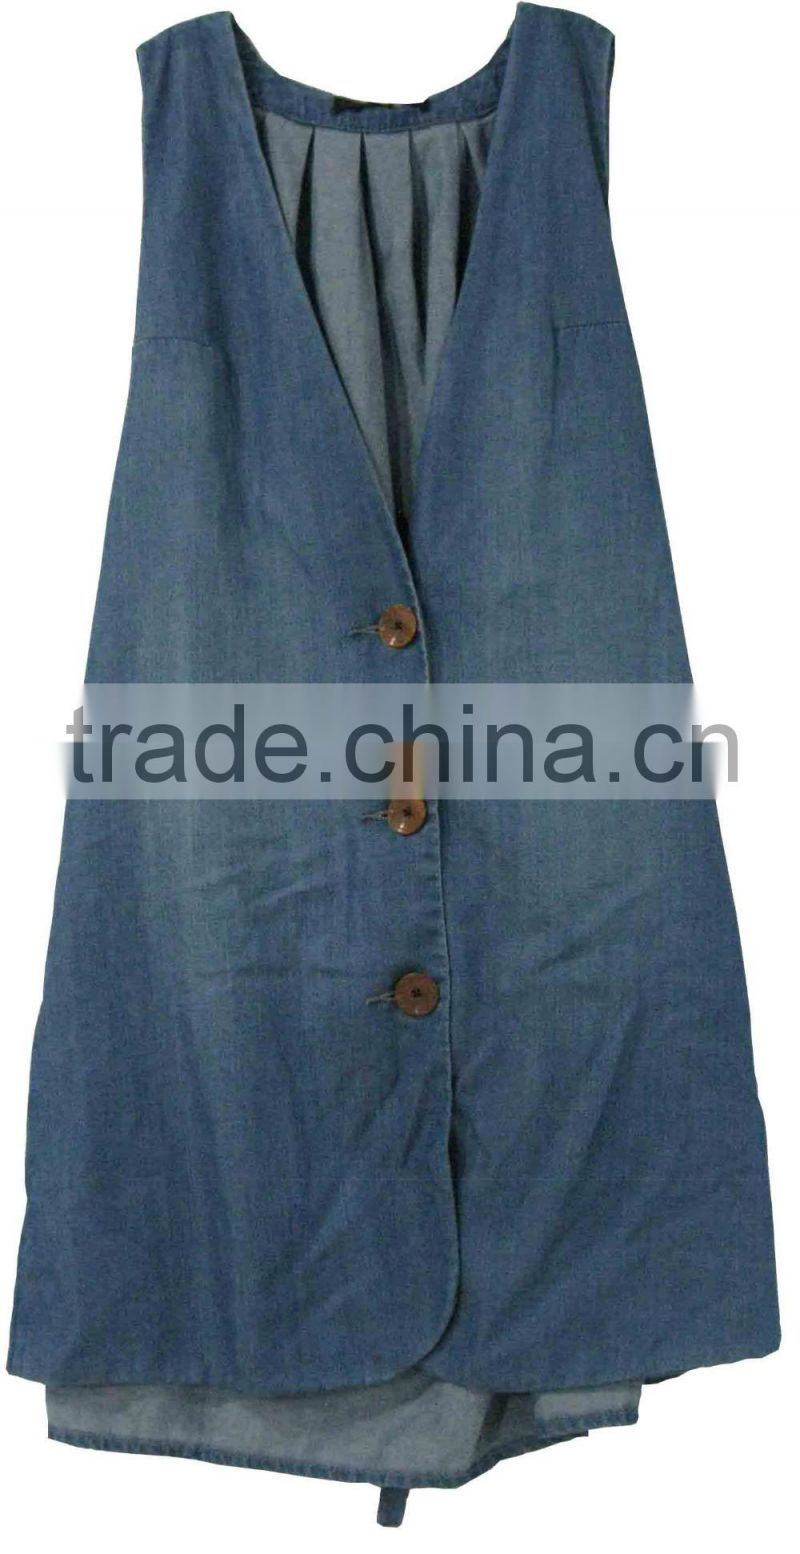 Adults fashion women sleeveless denim shirts ladies loose longer jeans vest jeans shirts manufacturer China